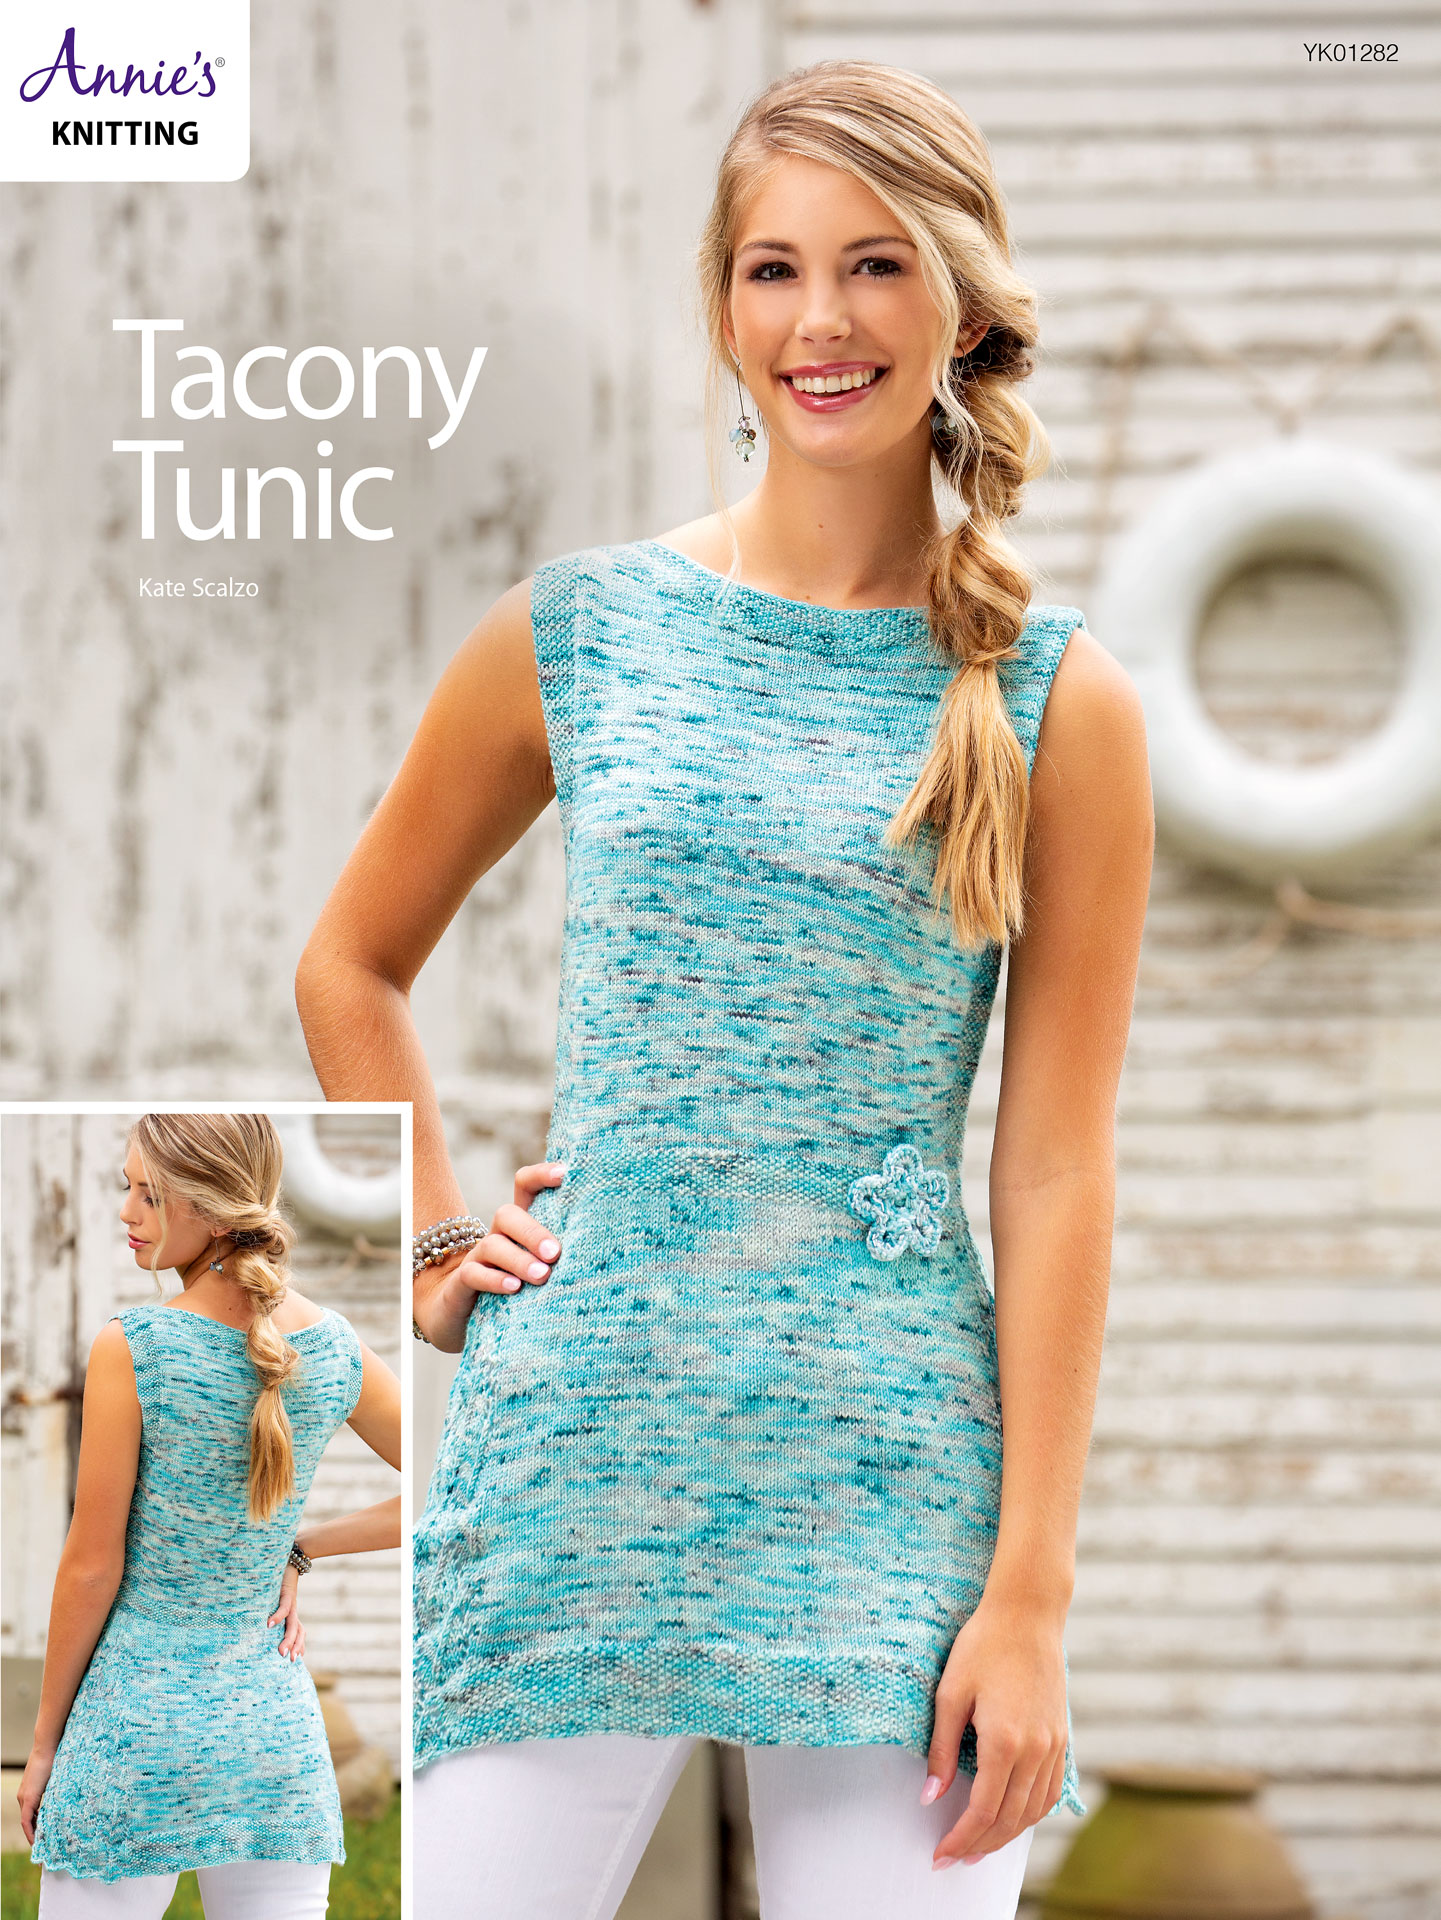 Tacony Tunic Knit Pattern